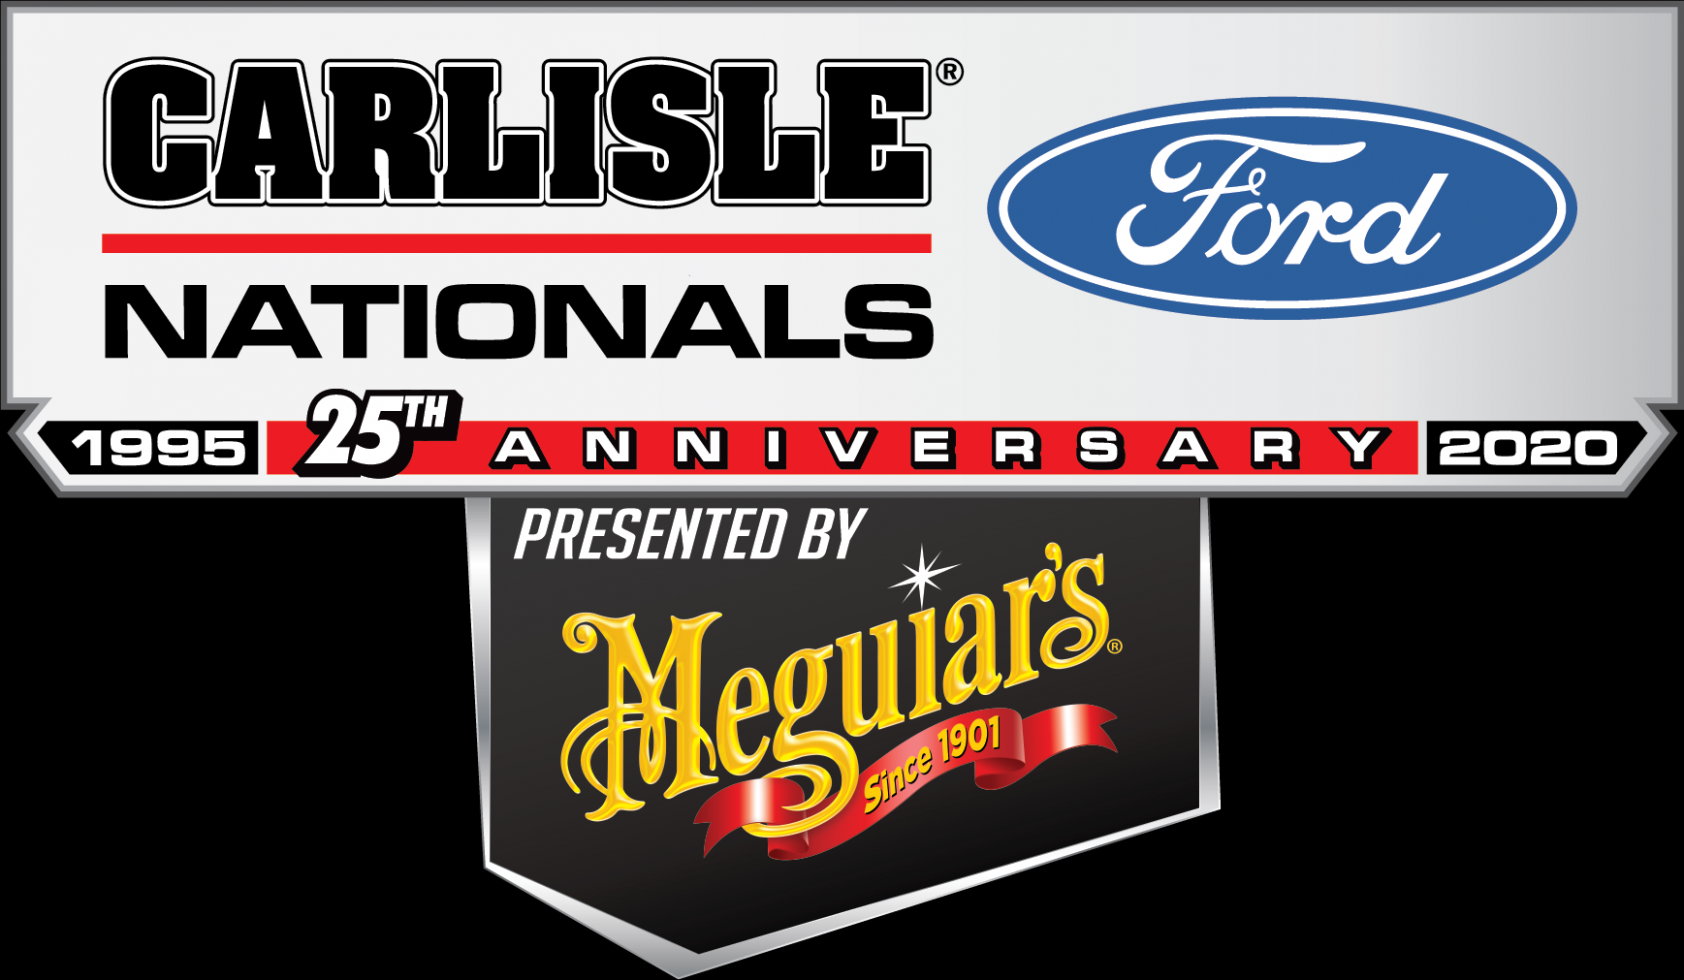 Carlisle Ford Nationals | Carlisle Events - ford nationals 2020